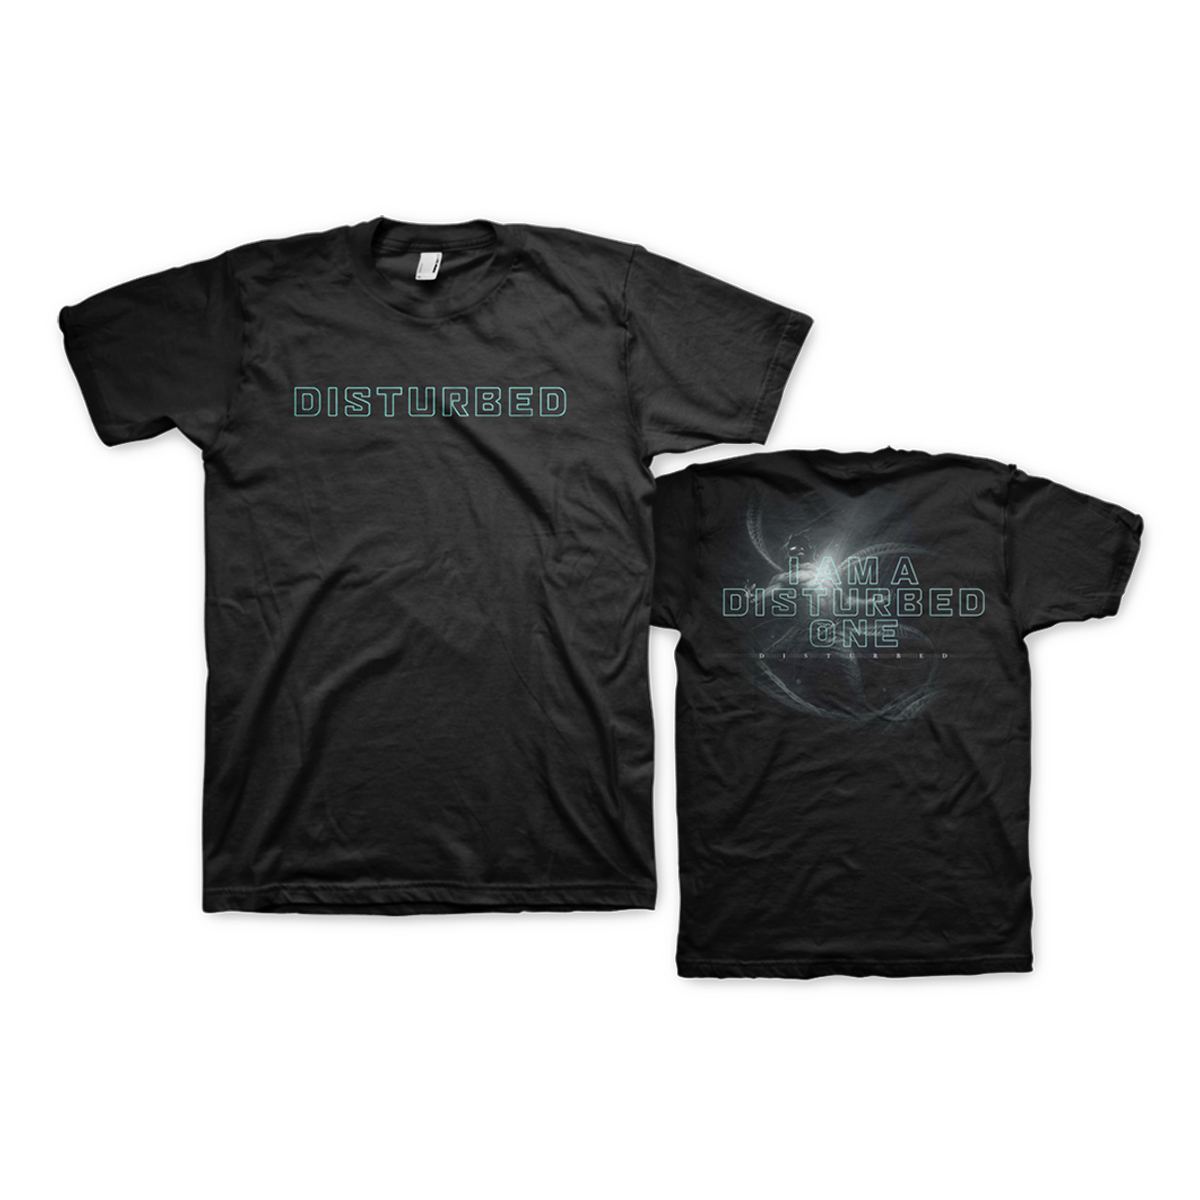 Disturbed One Black T-Shirt